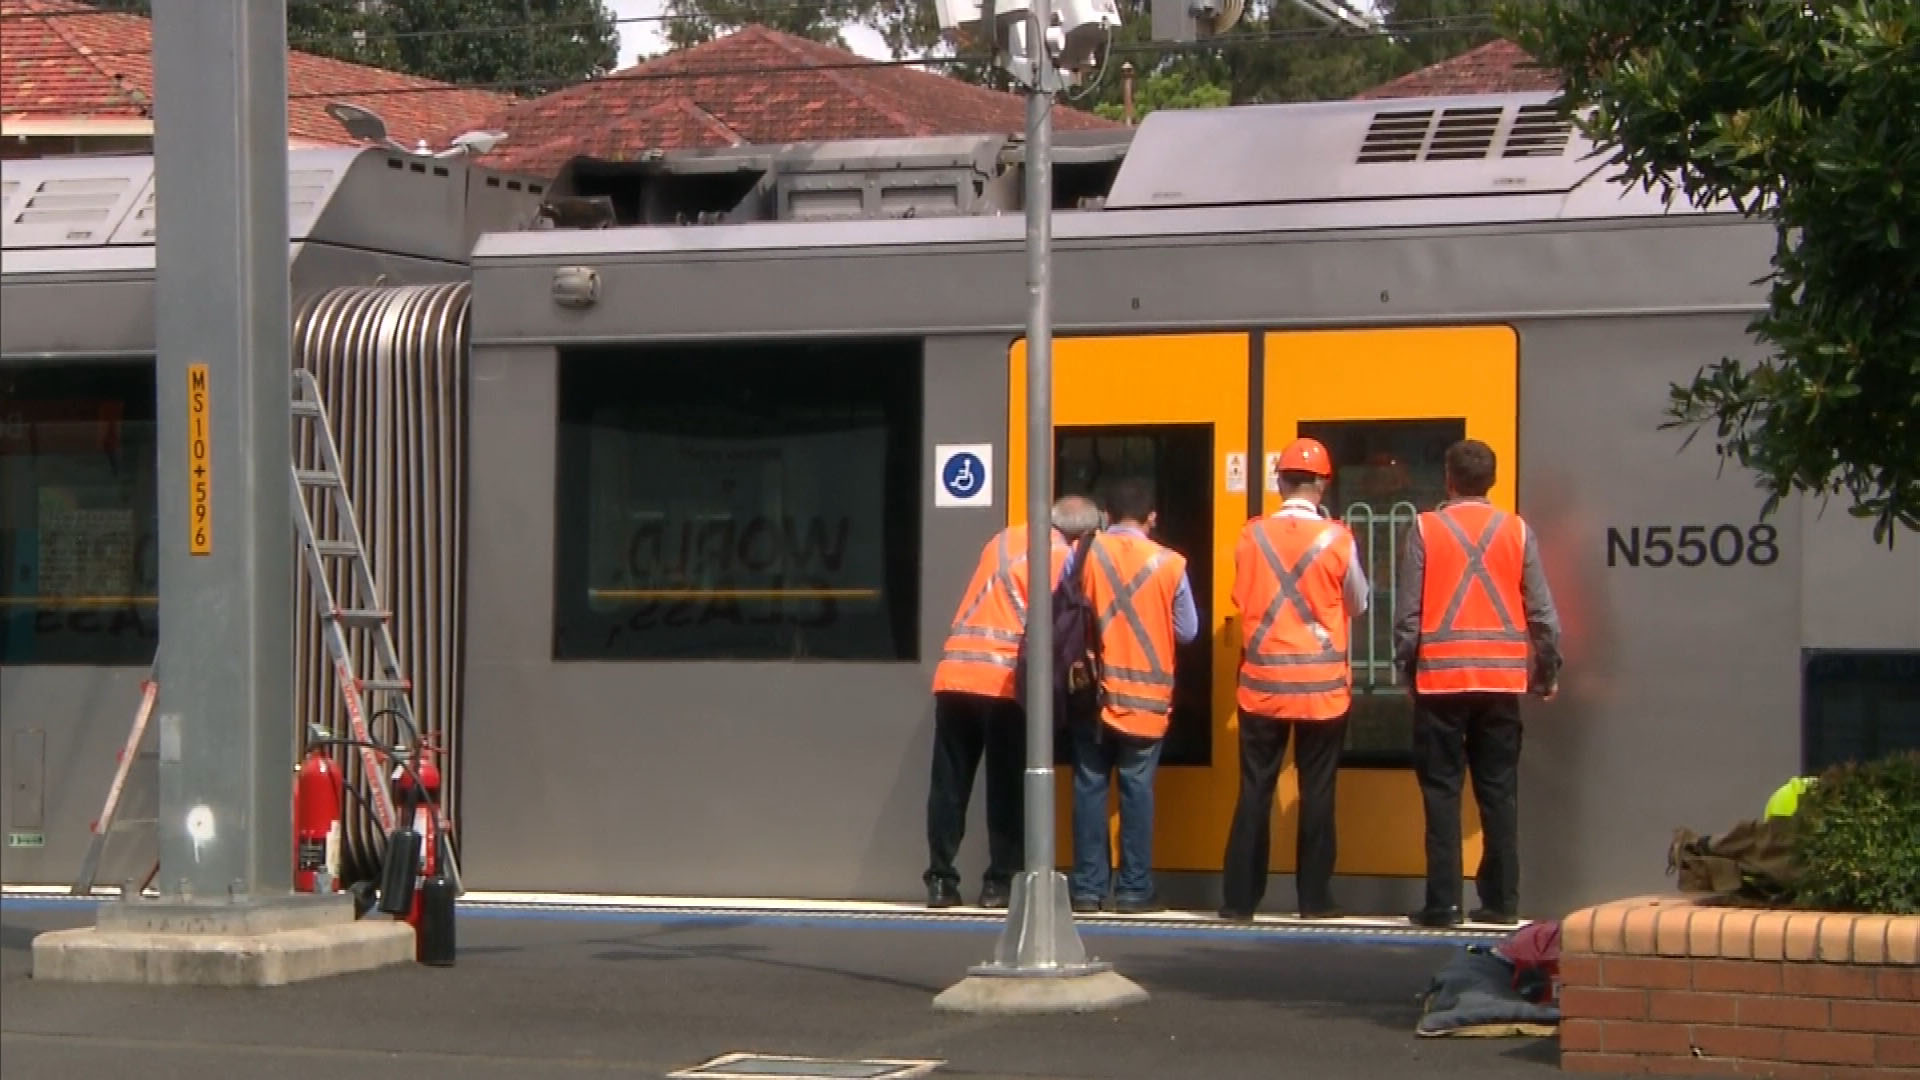 Repairs to the train triggered delays. (9NEWS)